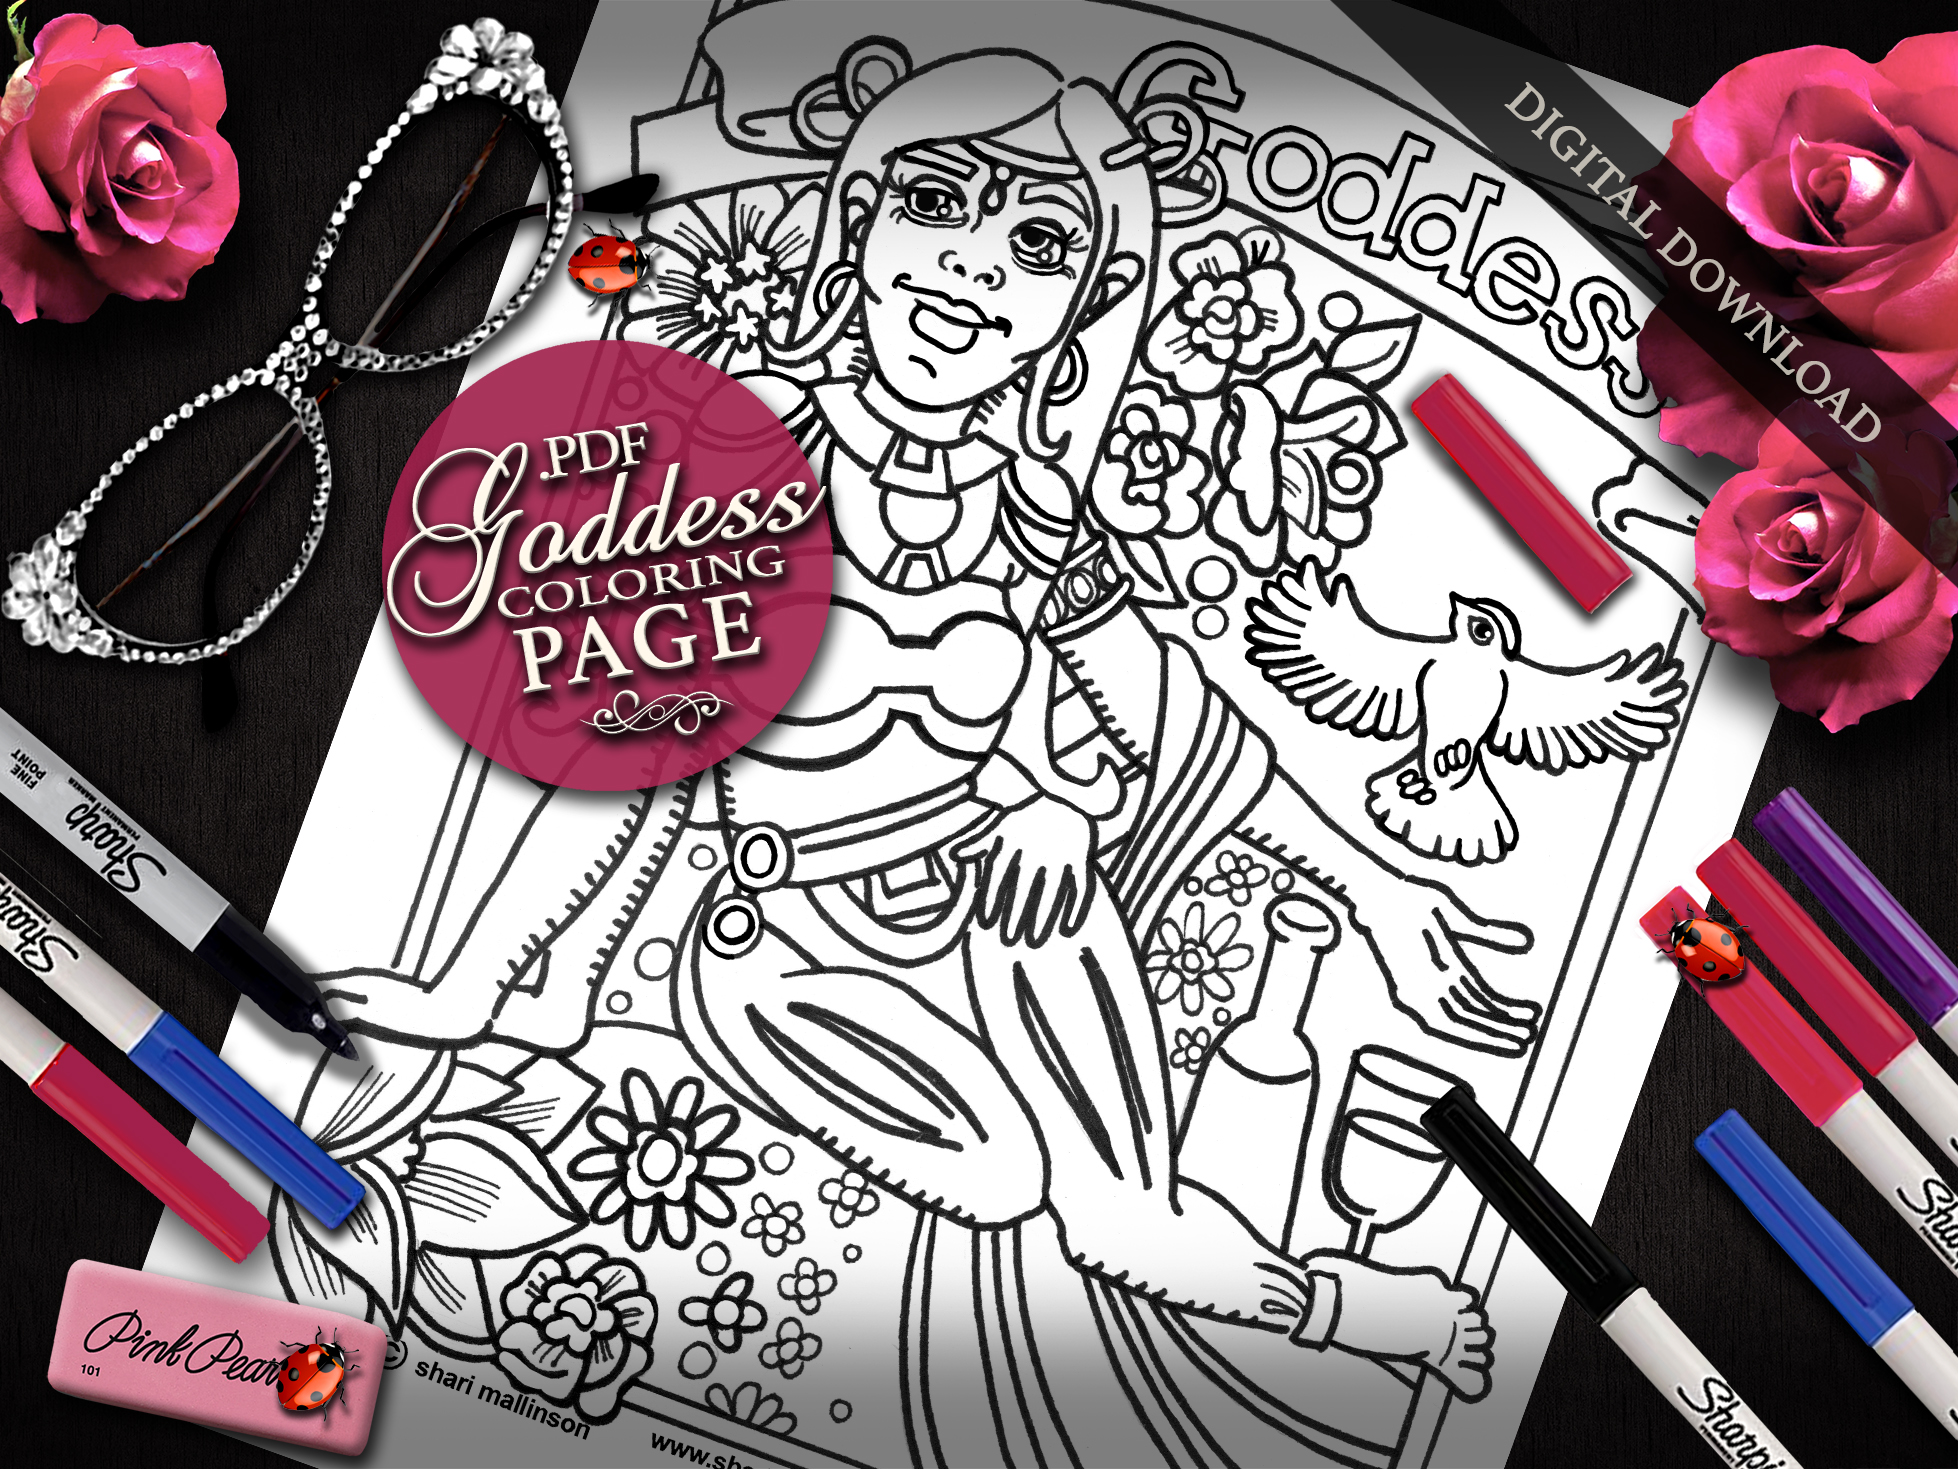 Goddess Coloring Page, Everyday Goddess Series